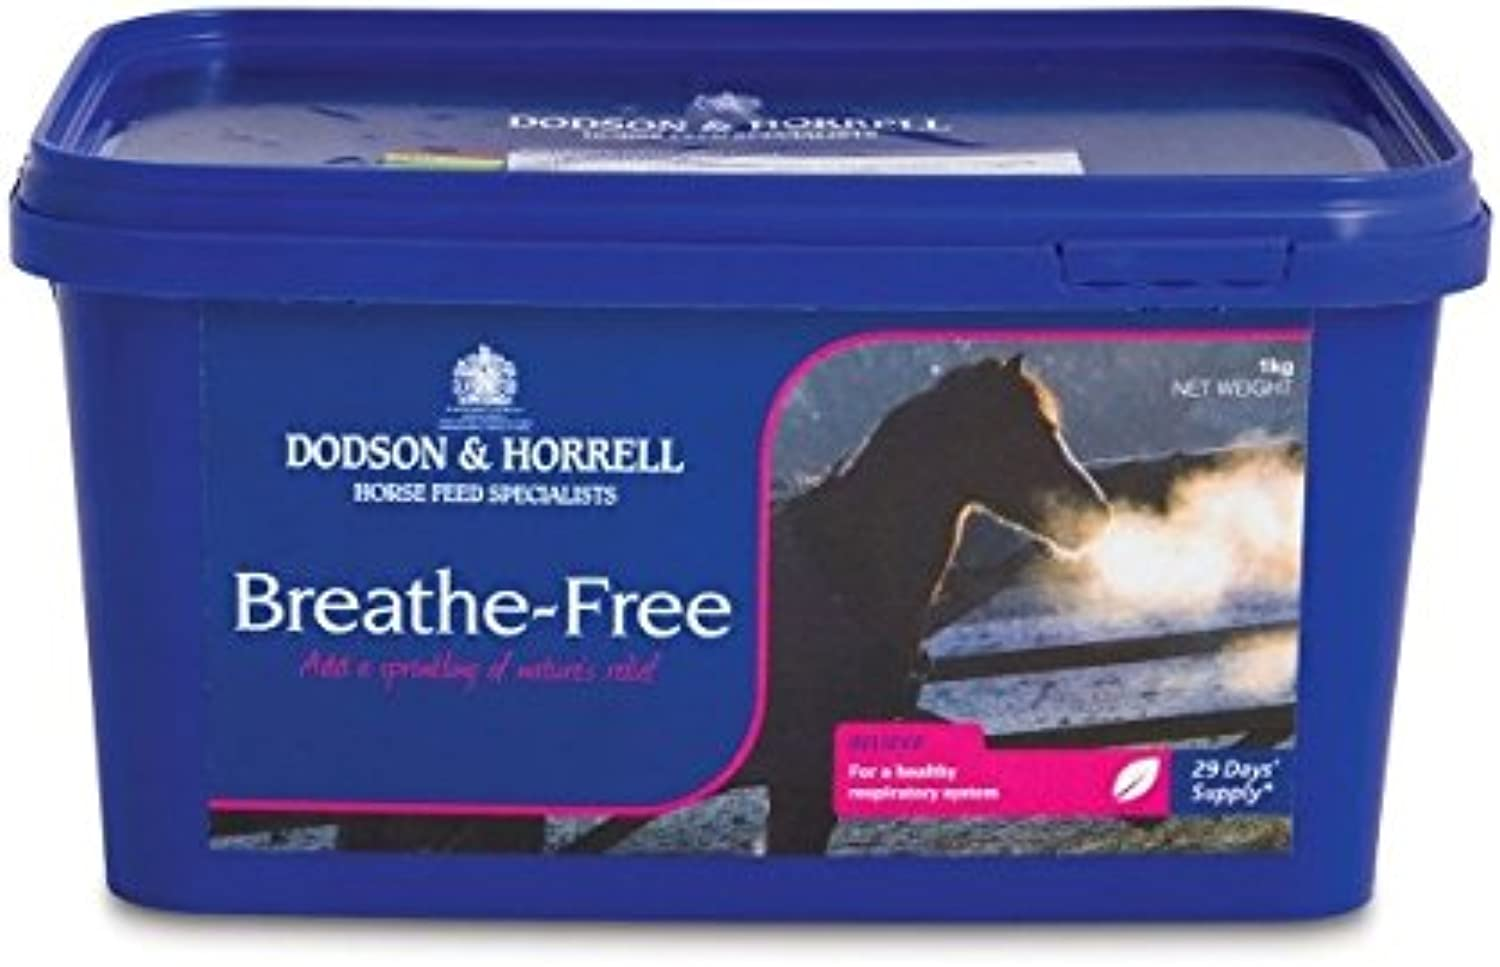 Dodson & Horrell Breathe Free with QLC for Horses, 1 kg